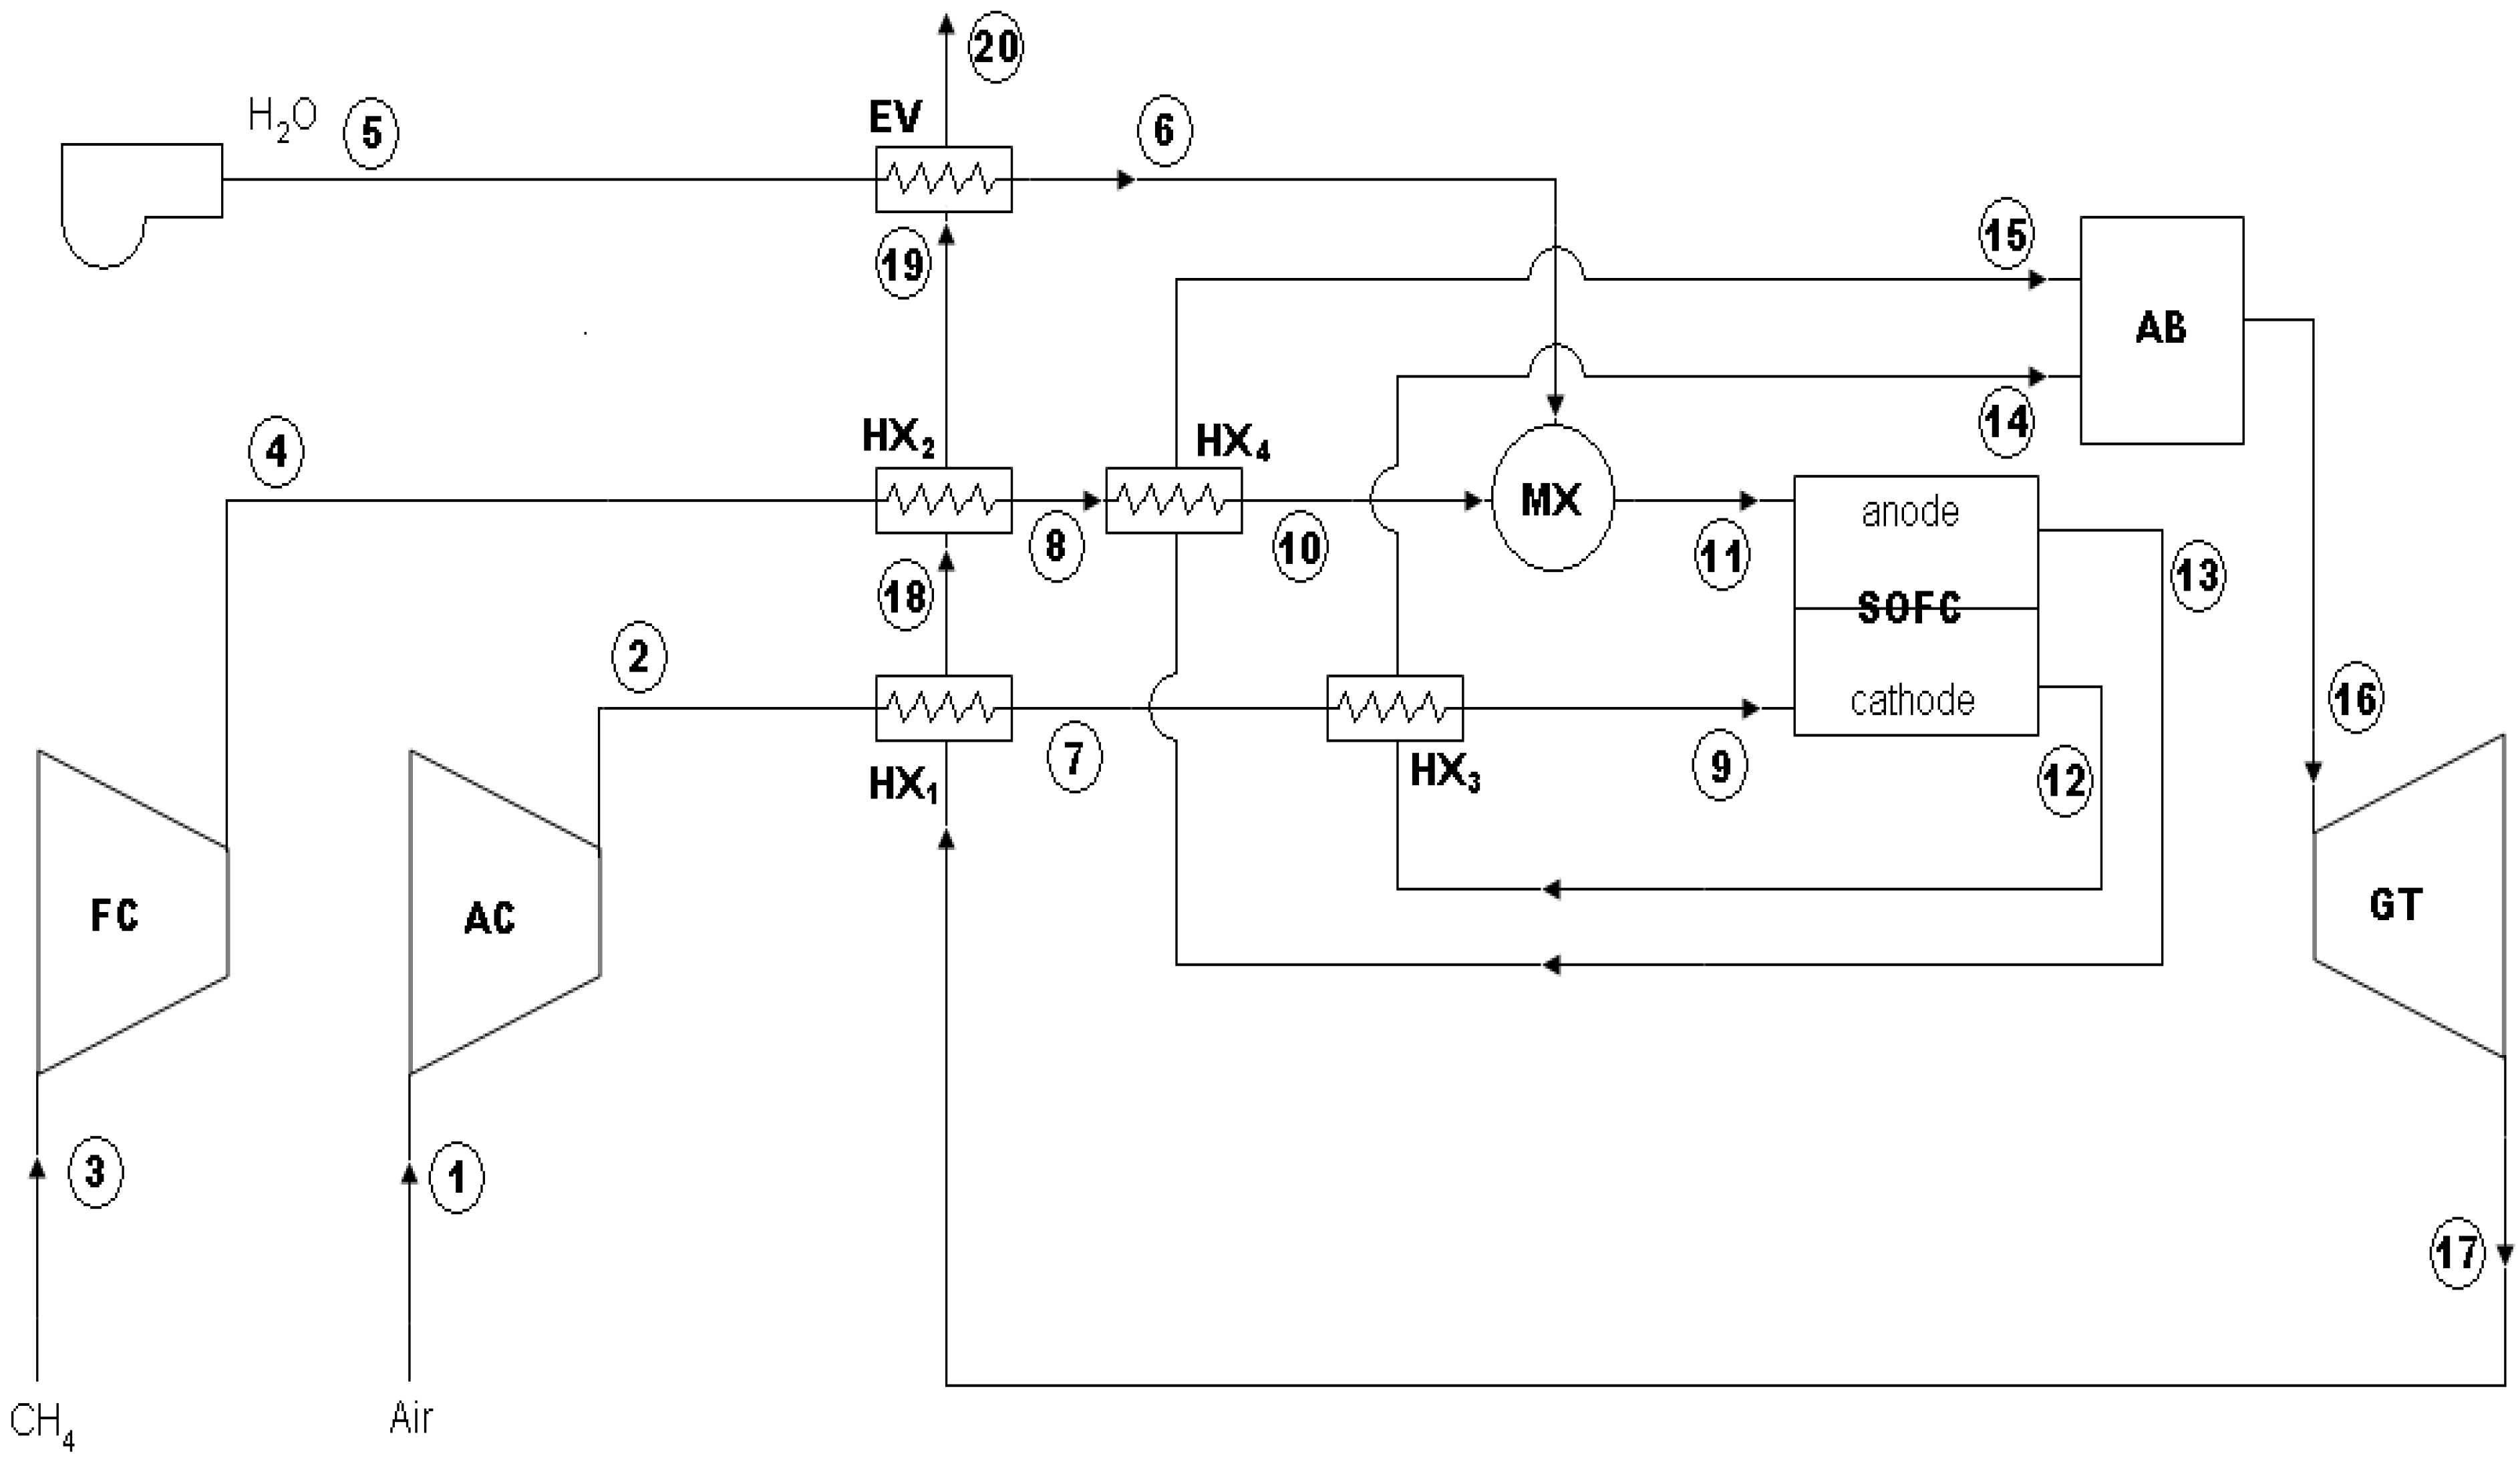 Gas Turbine Power Plant Schematic Diagram Explained Wiring Diagrams Energies Free Full Text Integration Of A Solid Oxide Fuel Cell Water